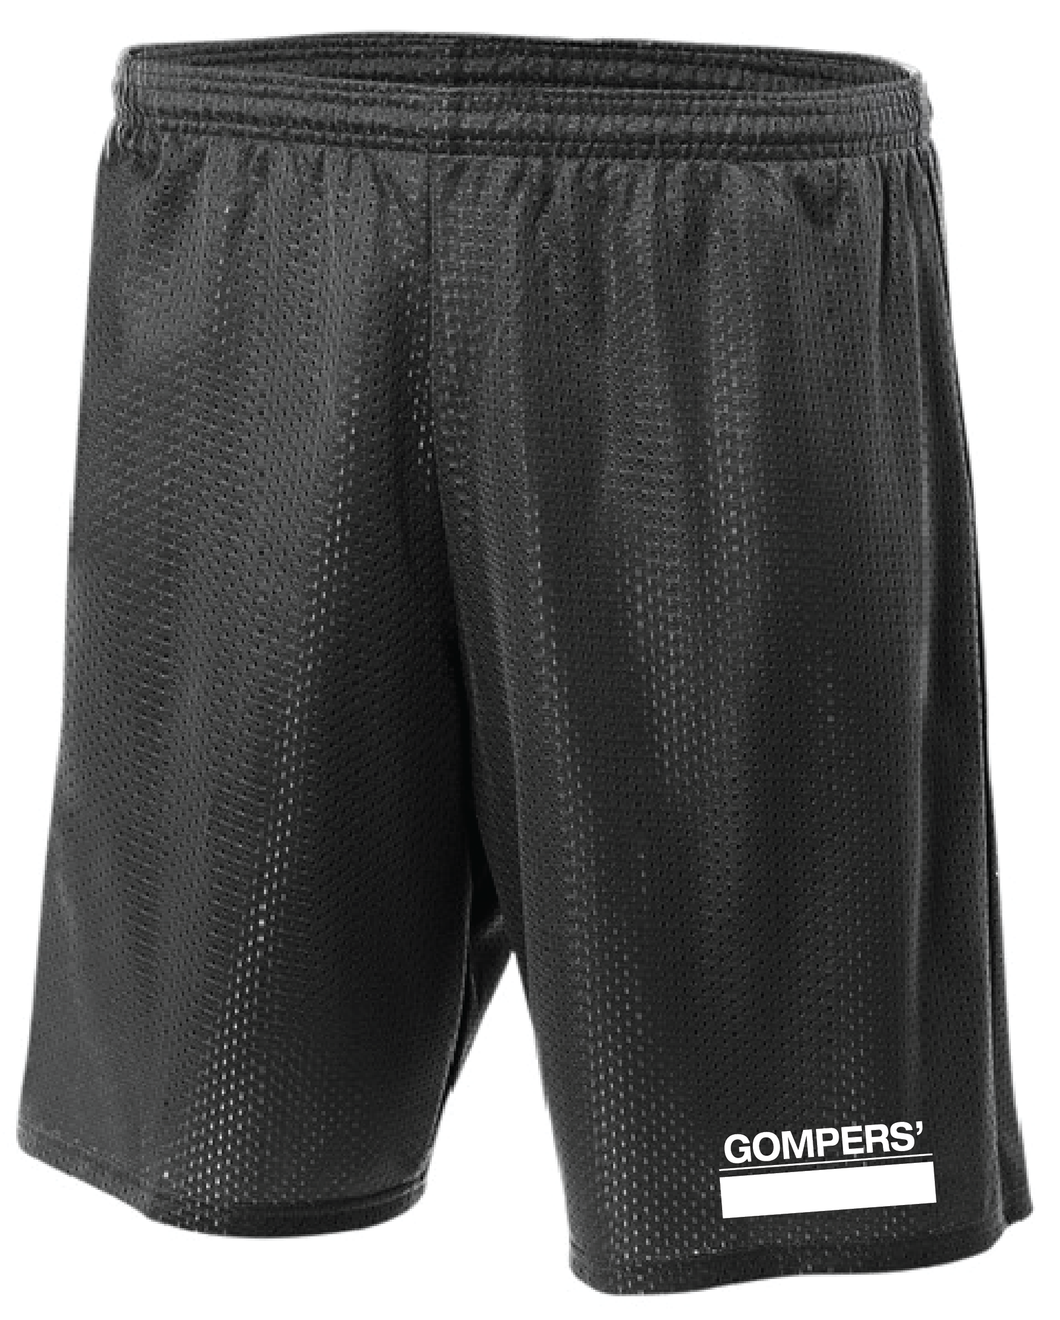 Gompers PE Shorts